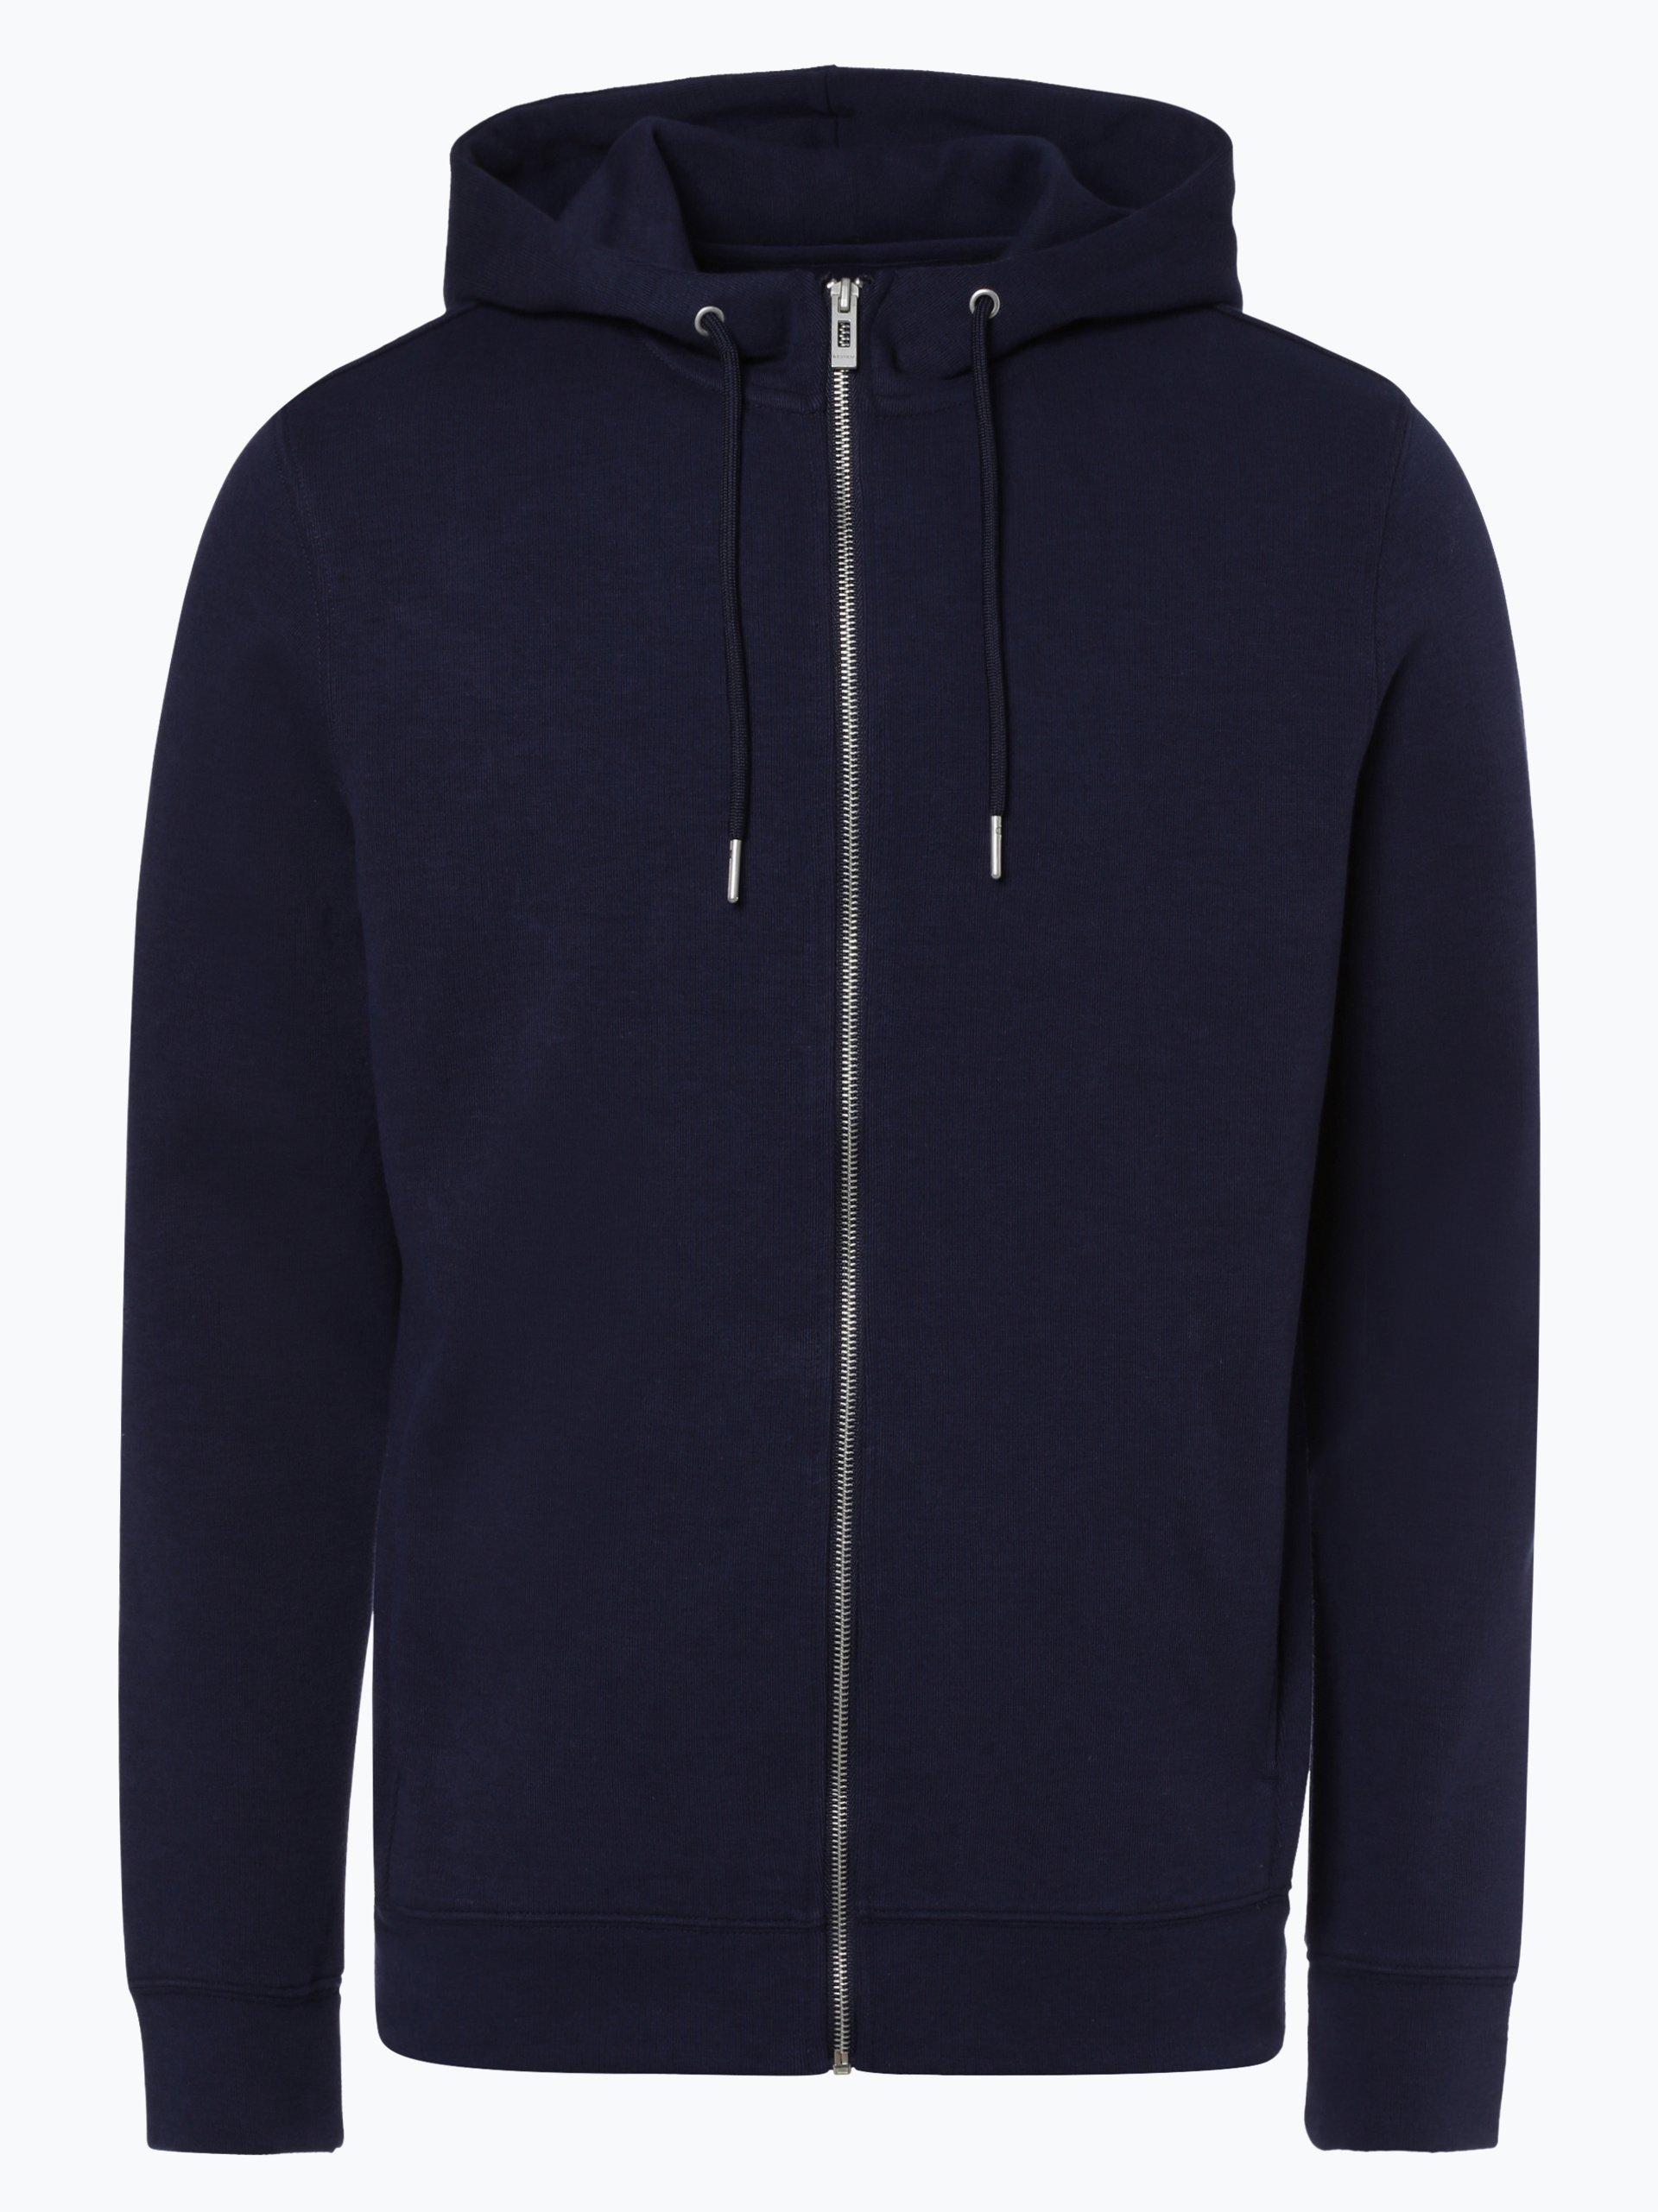 Review Herren Sweatjacke